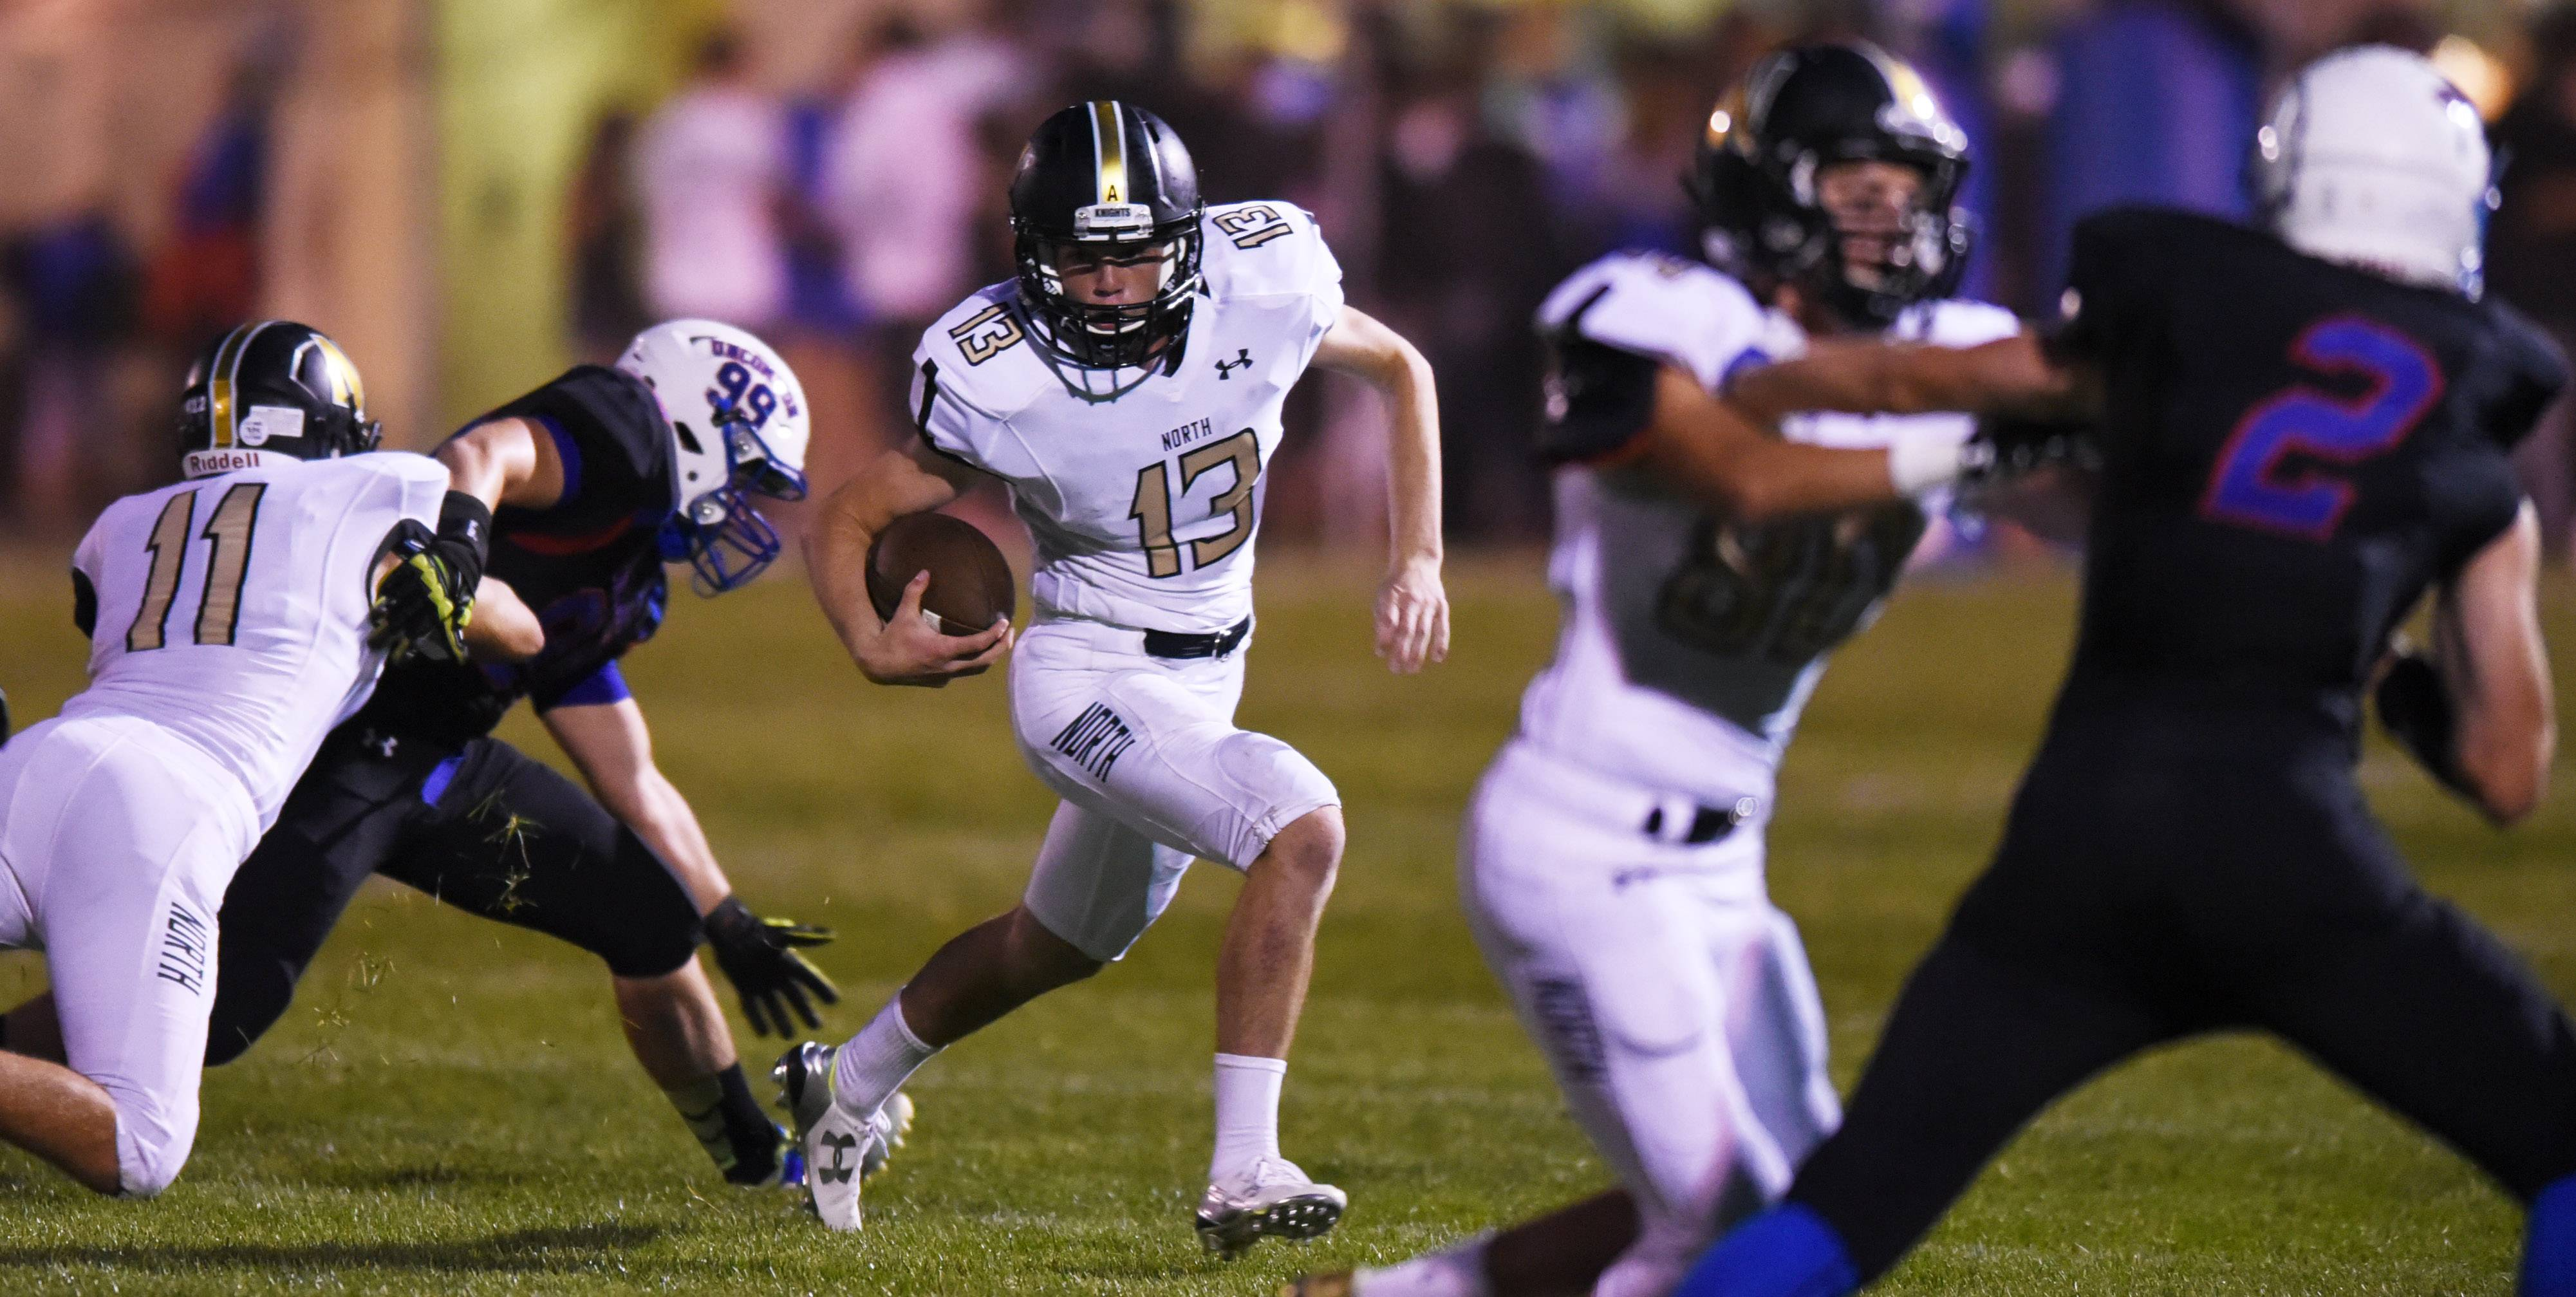 Grayslake North quarterback Jacob Wright carries the ball against Lakes during Friday's season opener in Lake Villa.